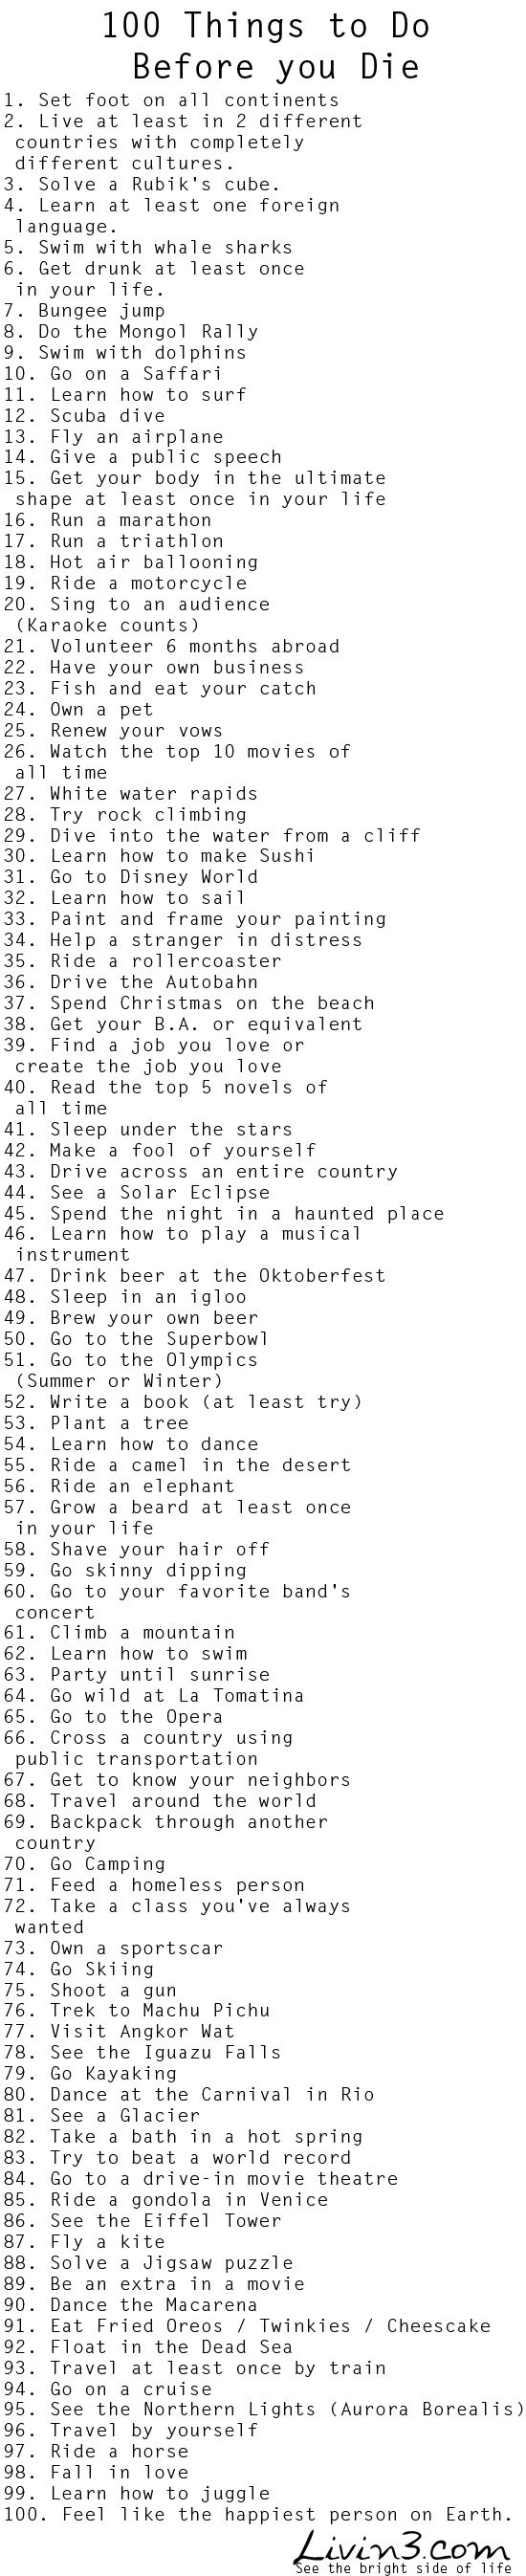 100 Things to do before I die Bucket List Live Your Life. Ya know, except the beard one..or shave hair off